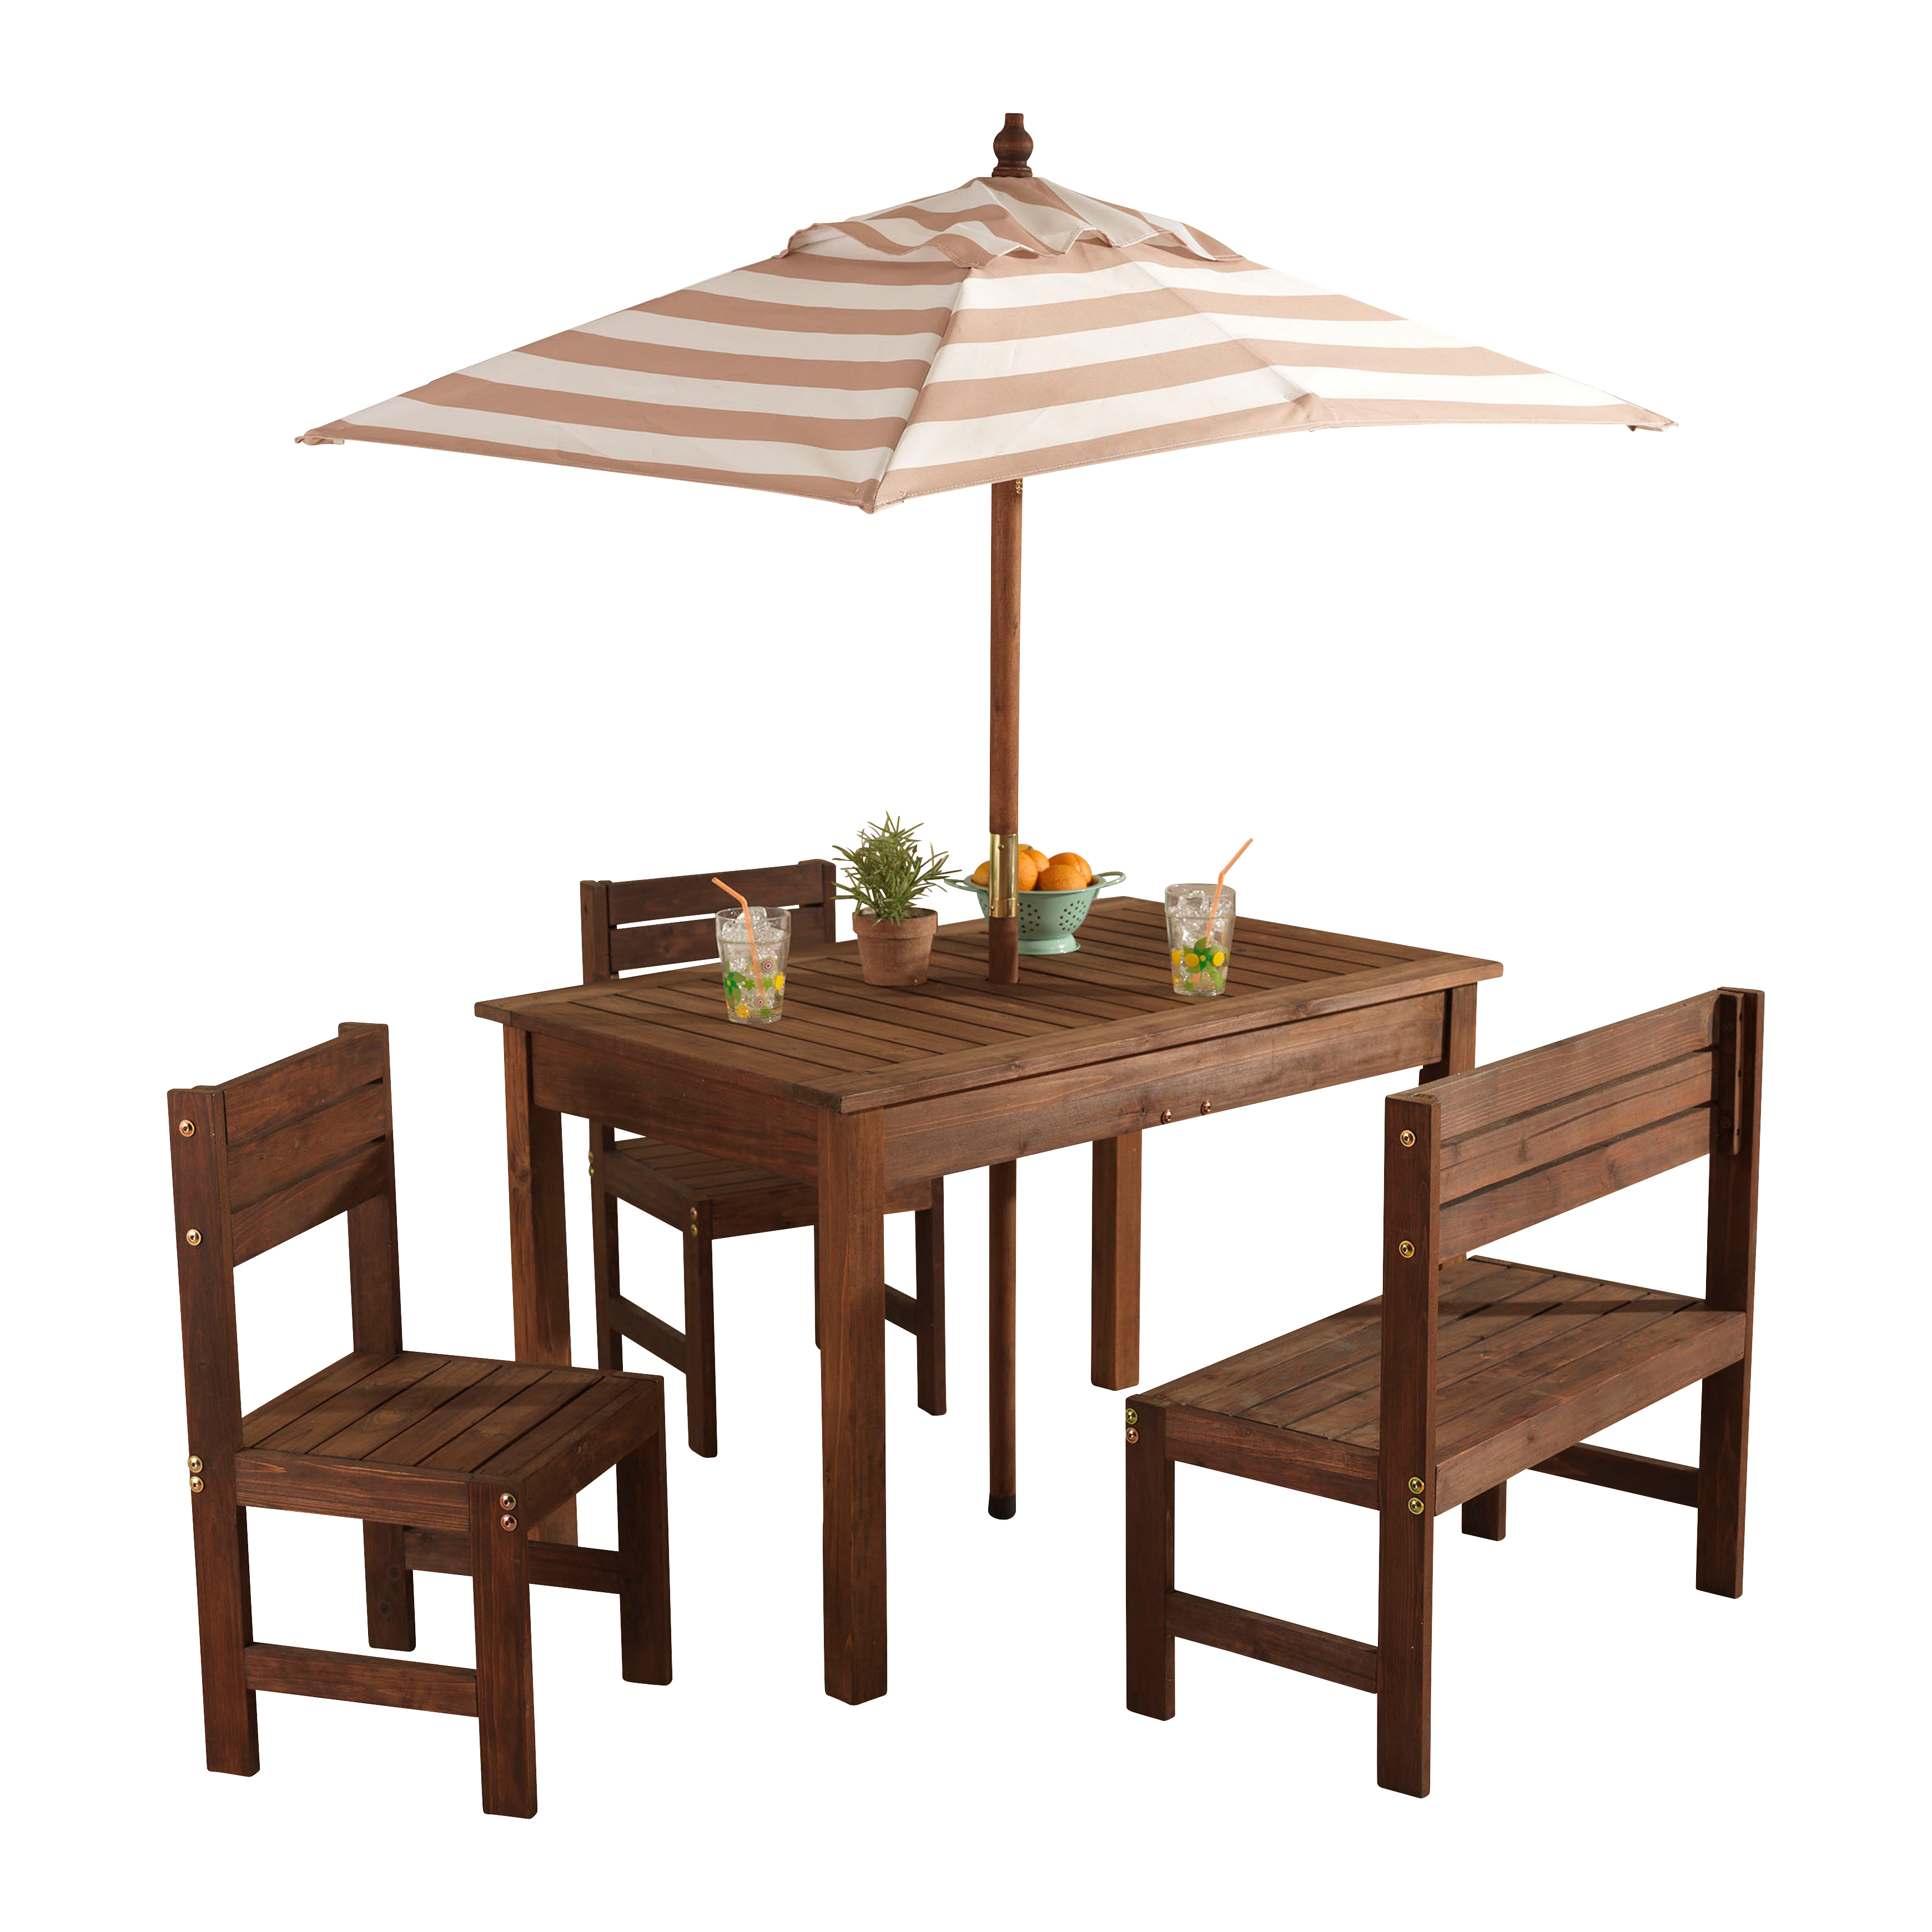 KidKraft Outdoor Patio Set With Umbrella   Beige U0026 White Stripes